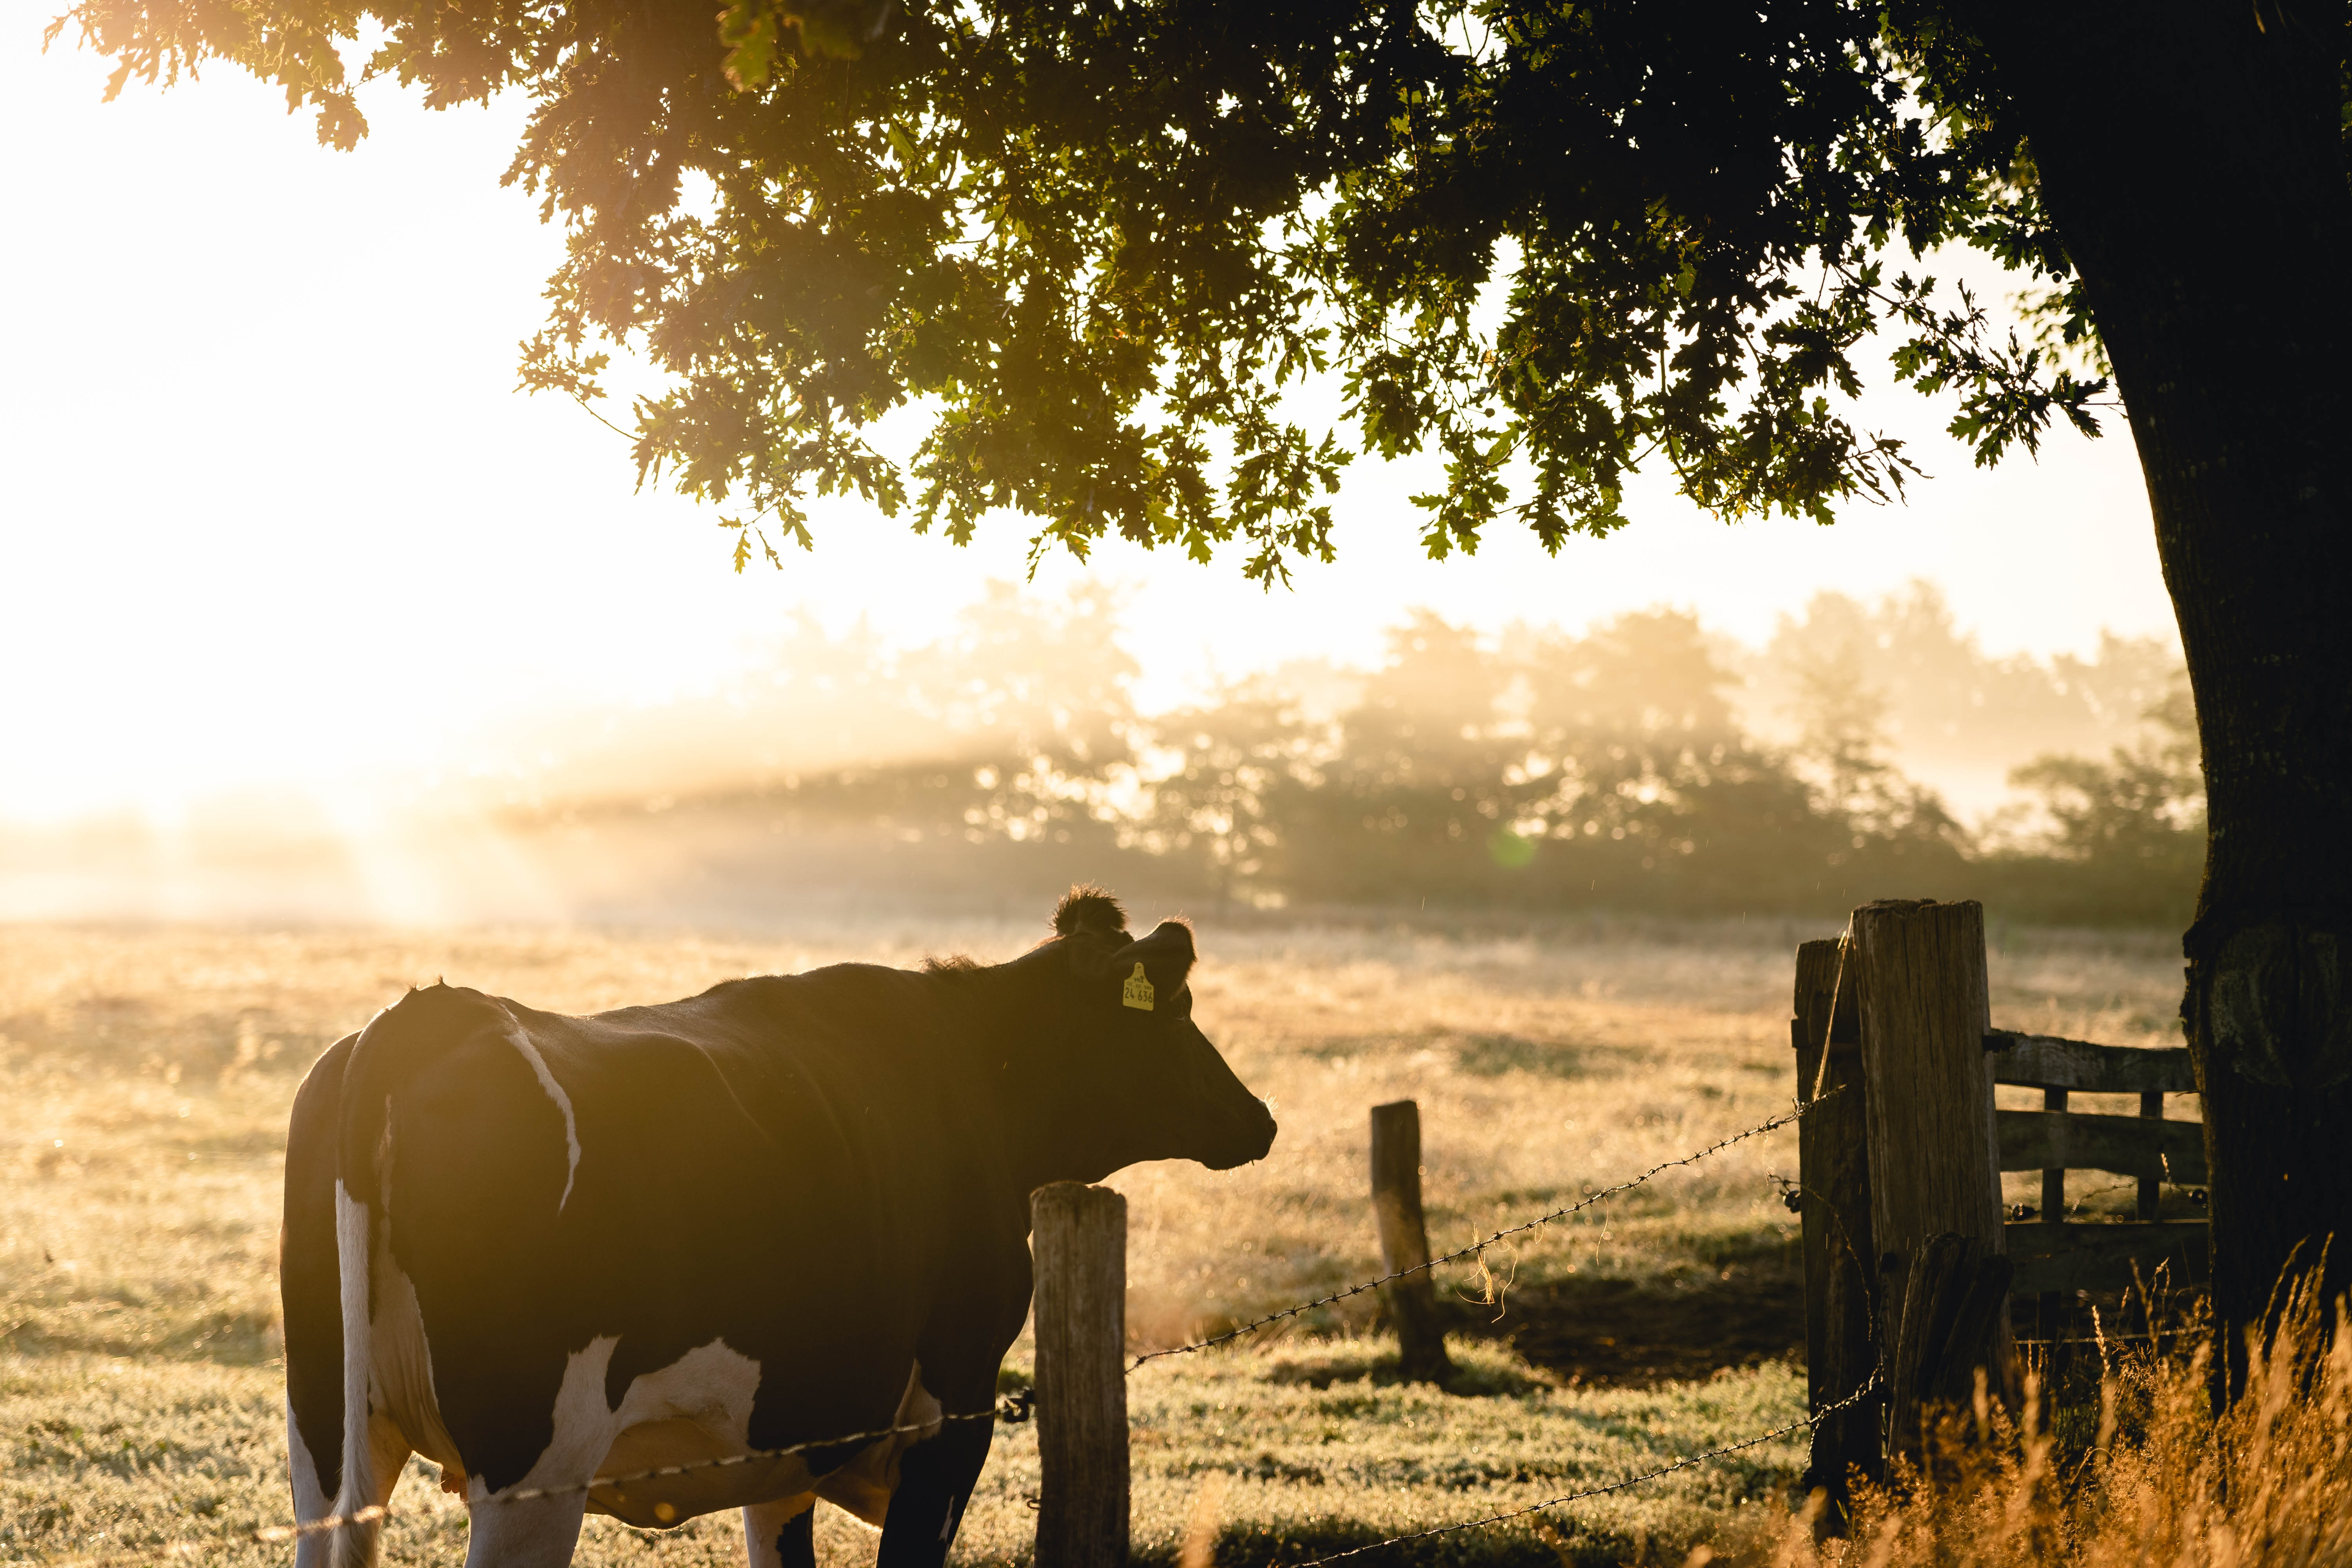 Farm to Fork: Sustainable Food Production in a Changing Environment